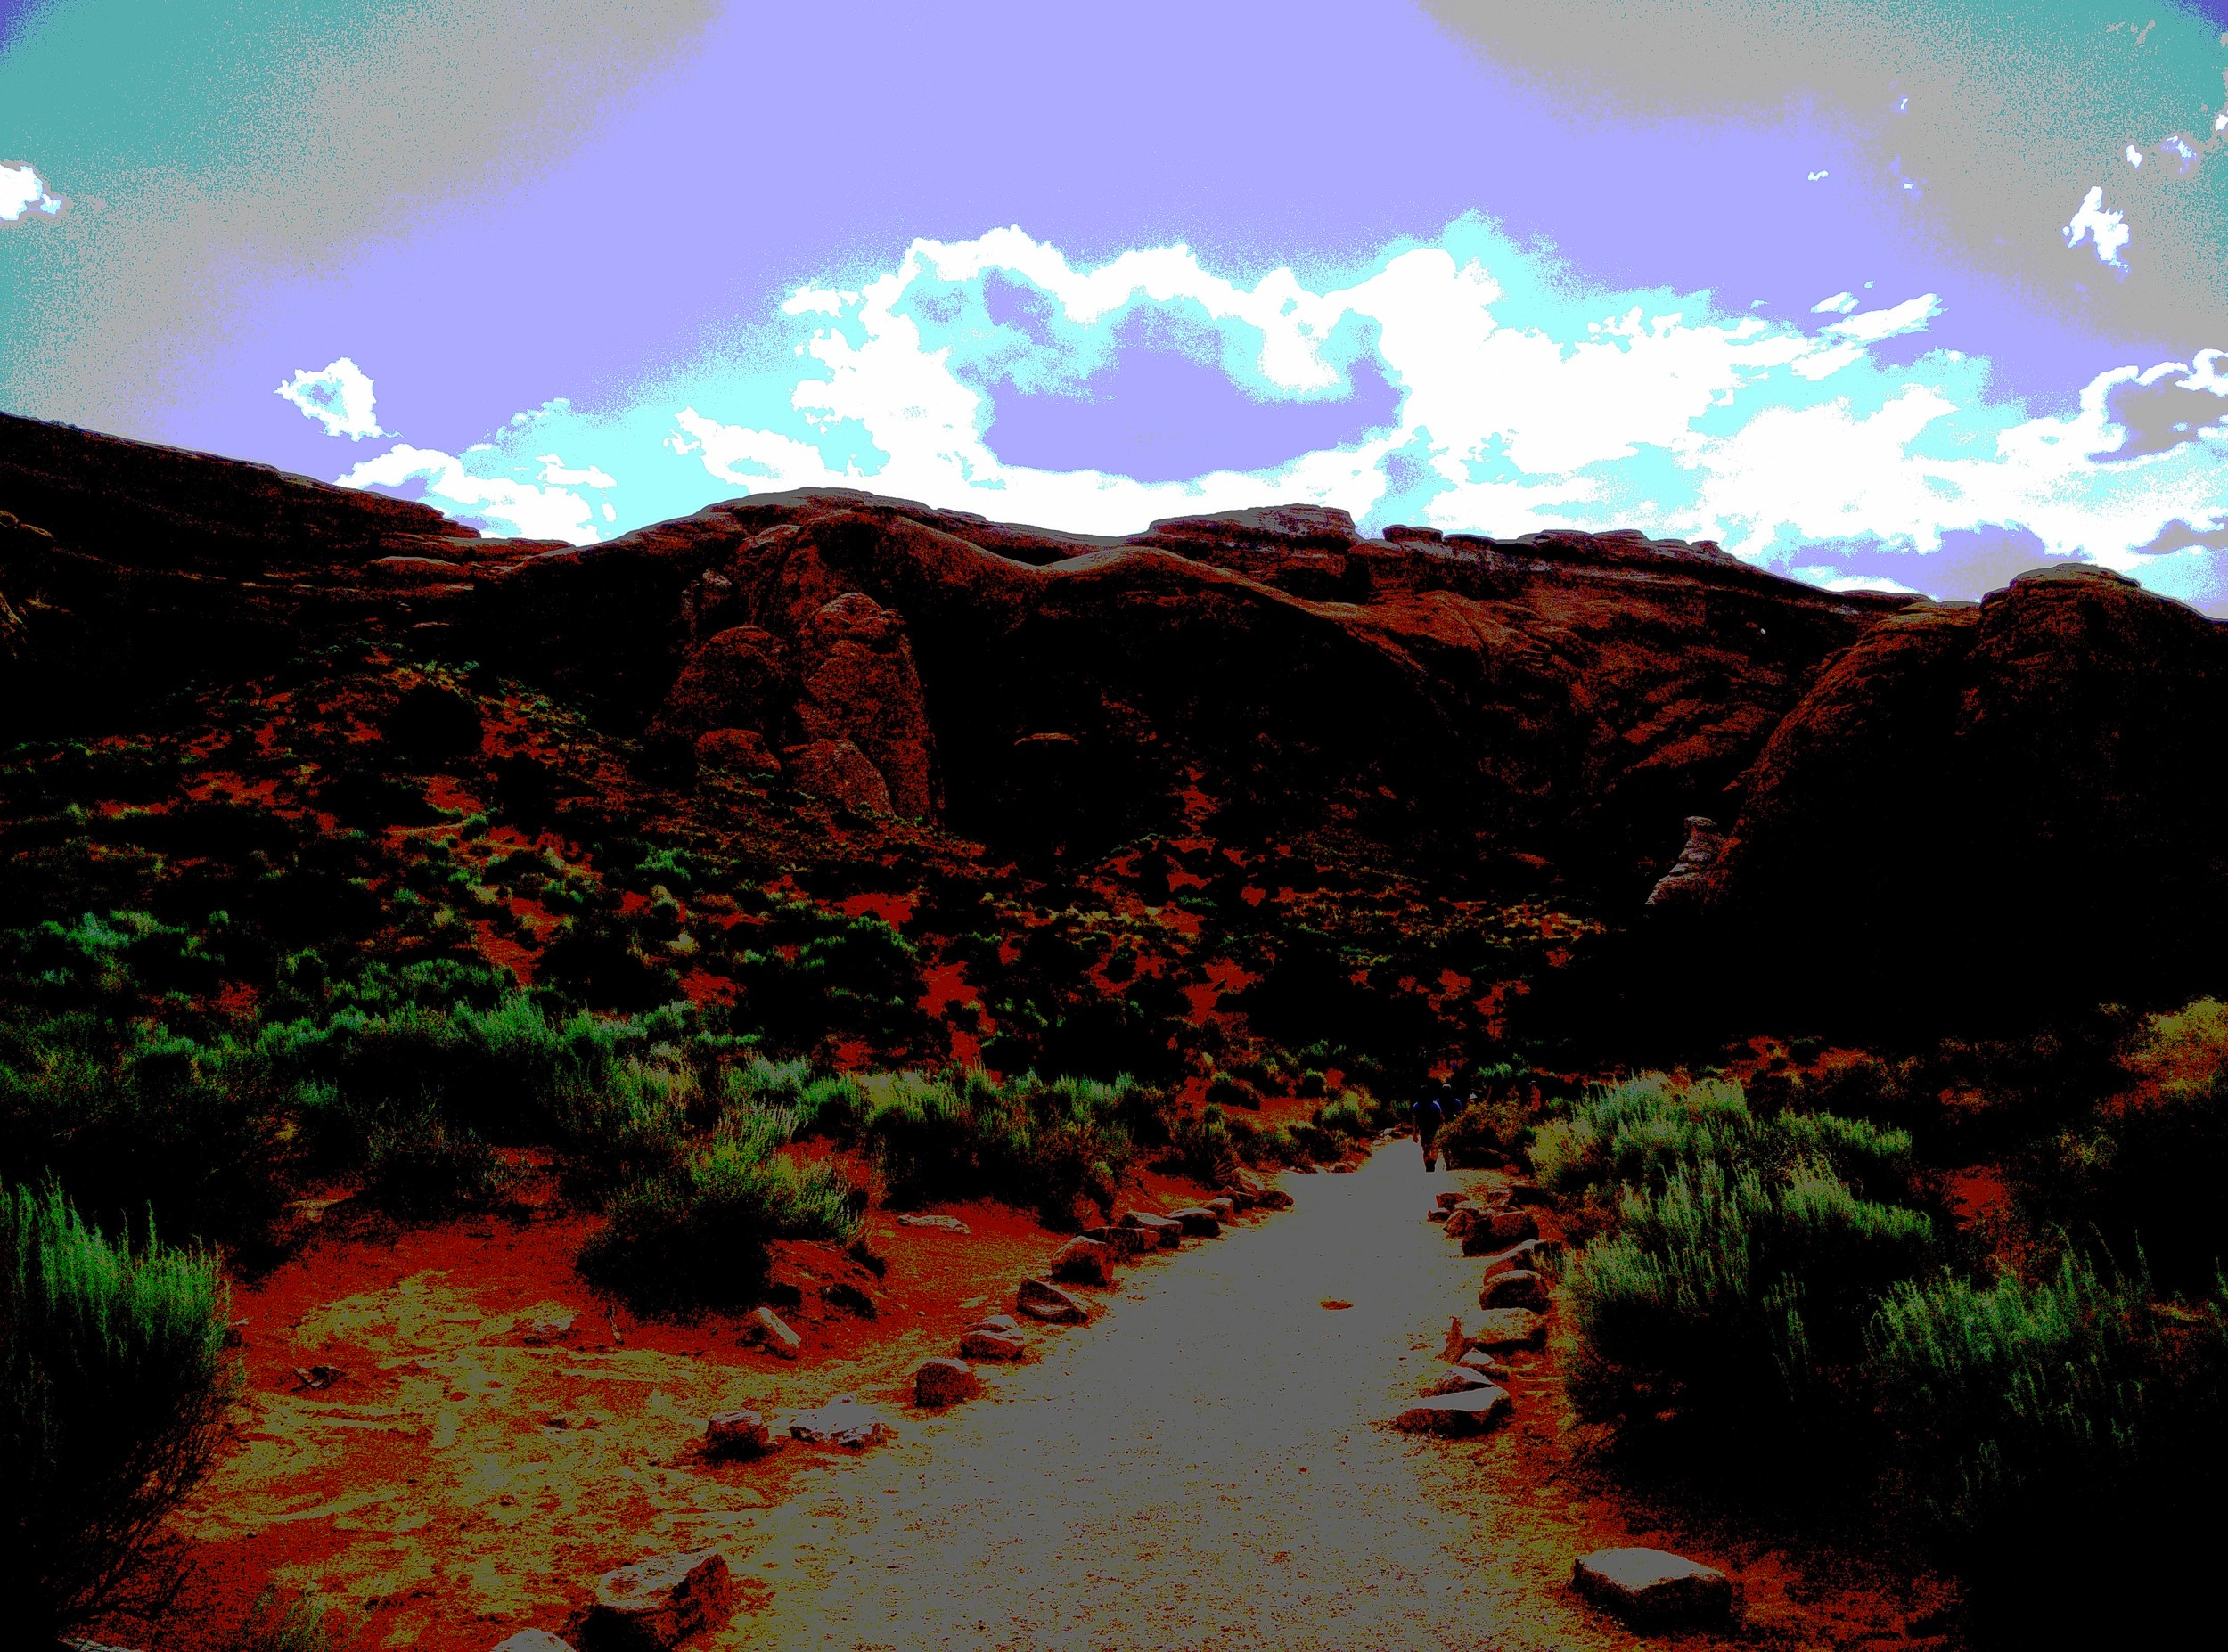 Hiking through Arches National Park (the only picture with a filter applied).